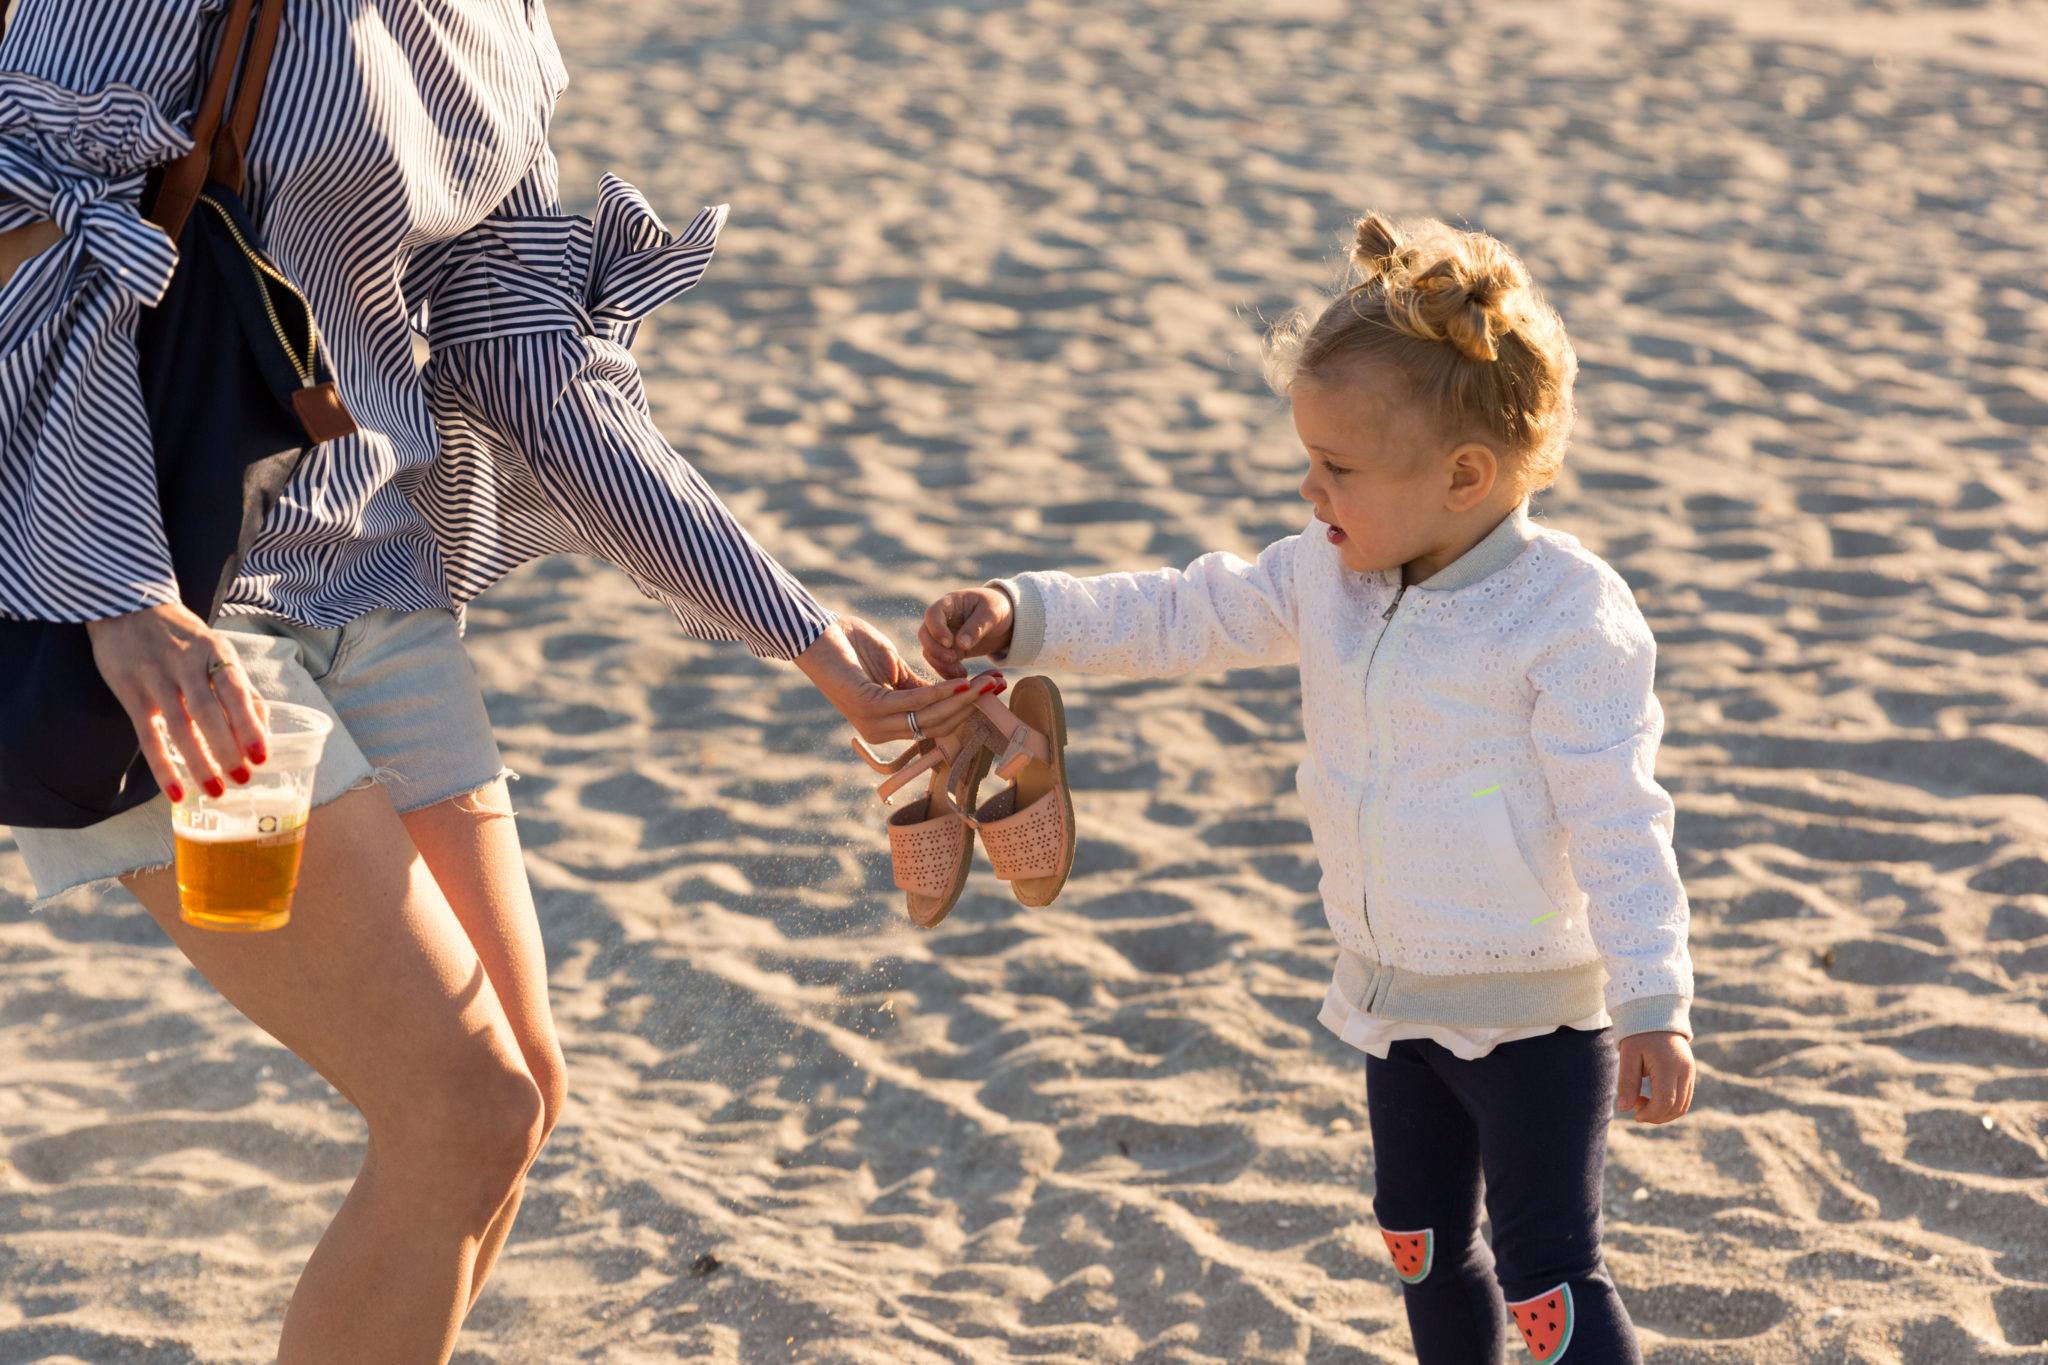 what to do and where to stay in delray beach florida   summer toddler style   summer style   beach style   west palm beach flordia   seagate hotel delray beach florida   family vacation with a toddler   visiting the miami zoo on allweareblog.com